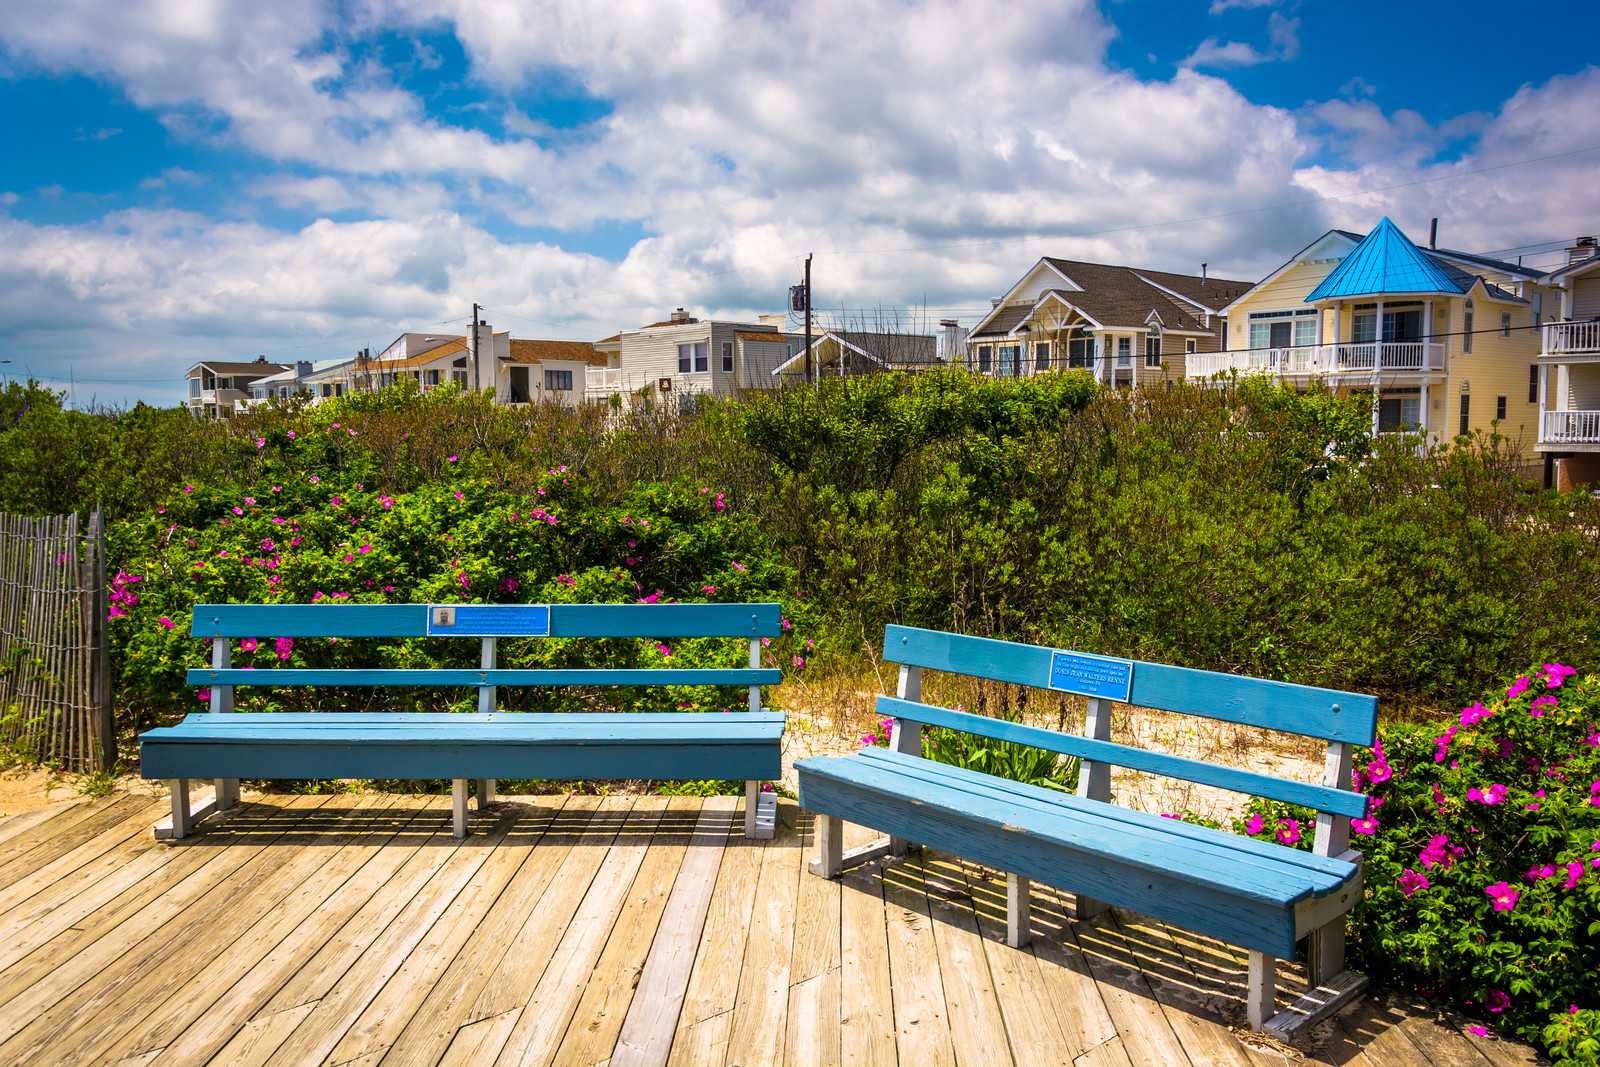 Photo of Beach houses in ocean city, new jersey from a boardwalk with blue benches on a sunny day blue skies and white billowy clouds